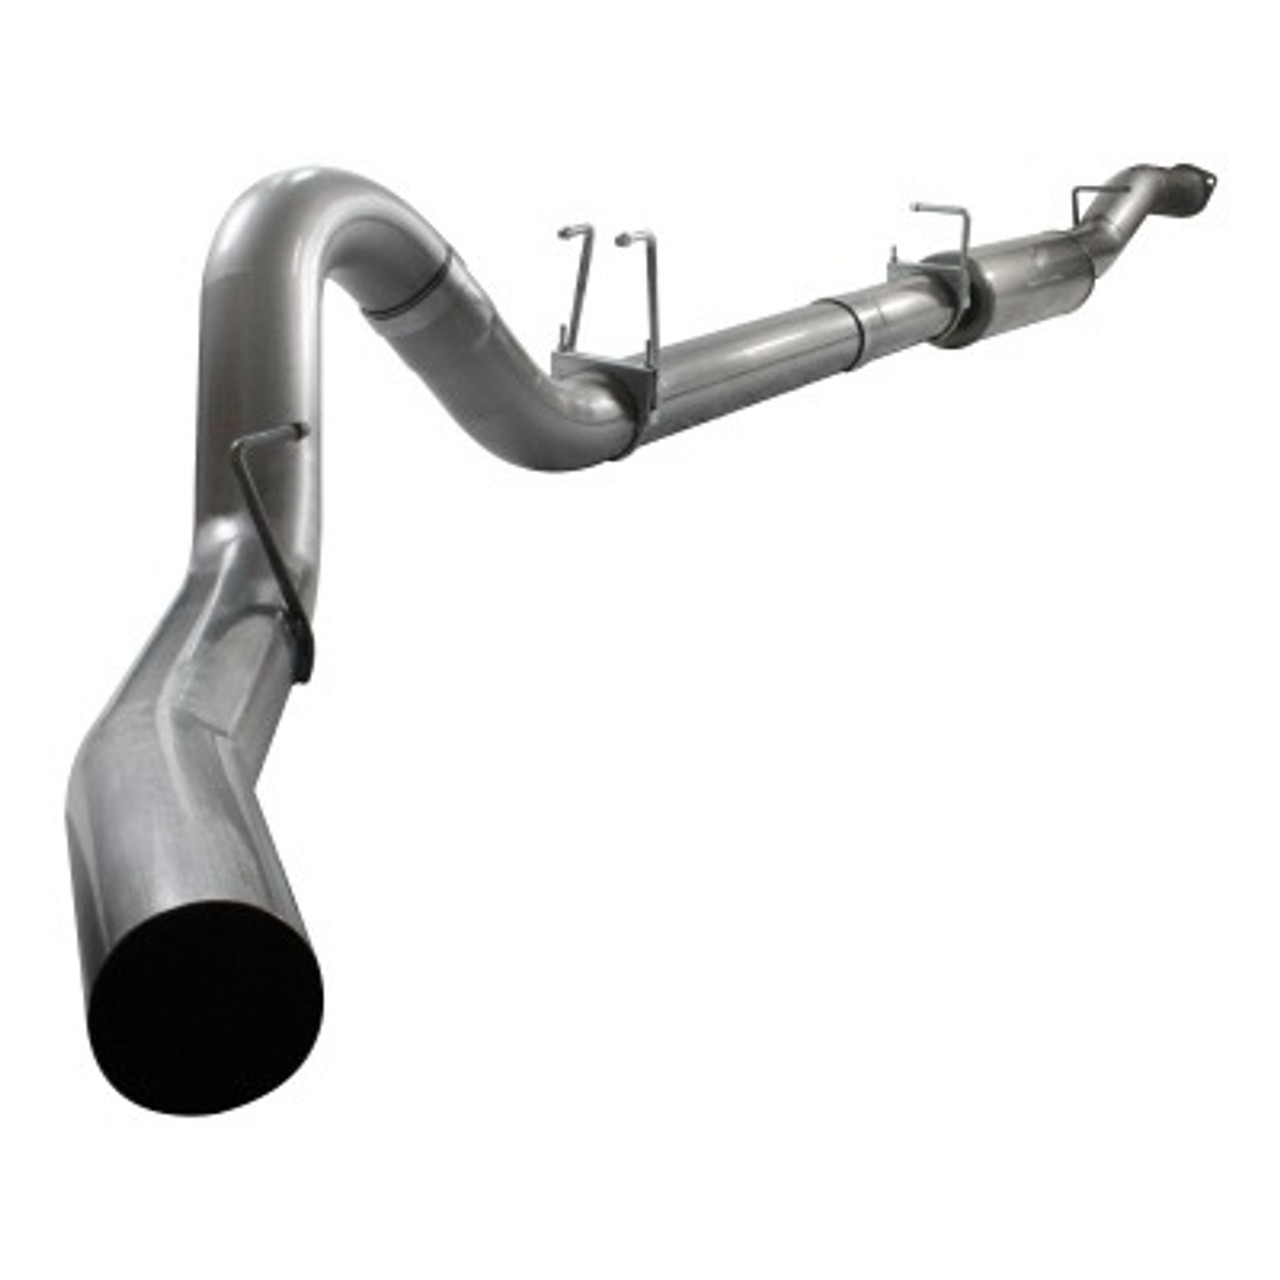 MACH Force XP 5' Down-Pipe Back Stainless Steel Exhaust System; Ford Diesel Trucks 08-10 V8-6.4L (td)